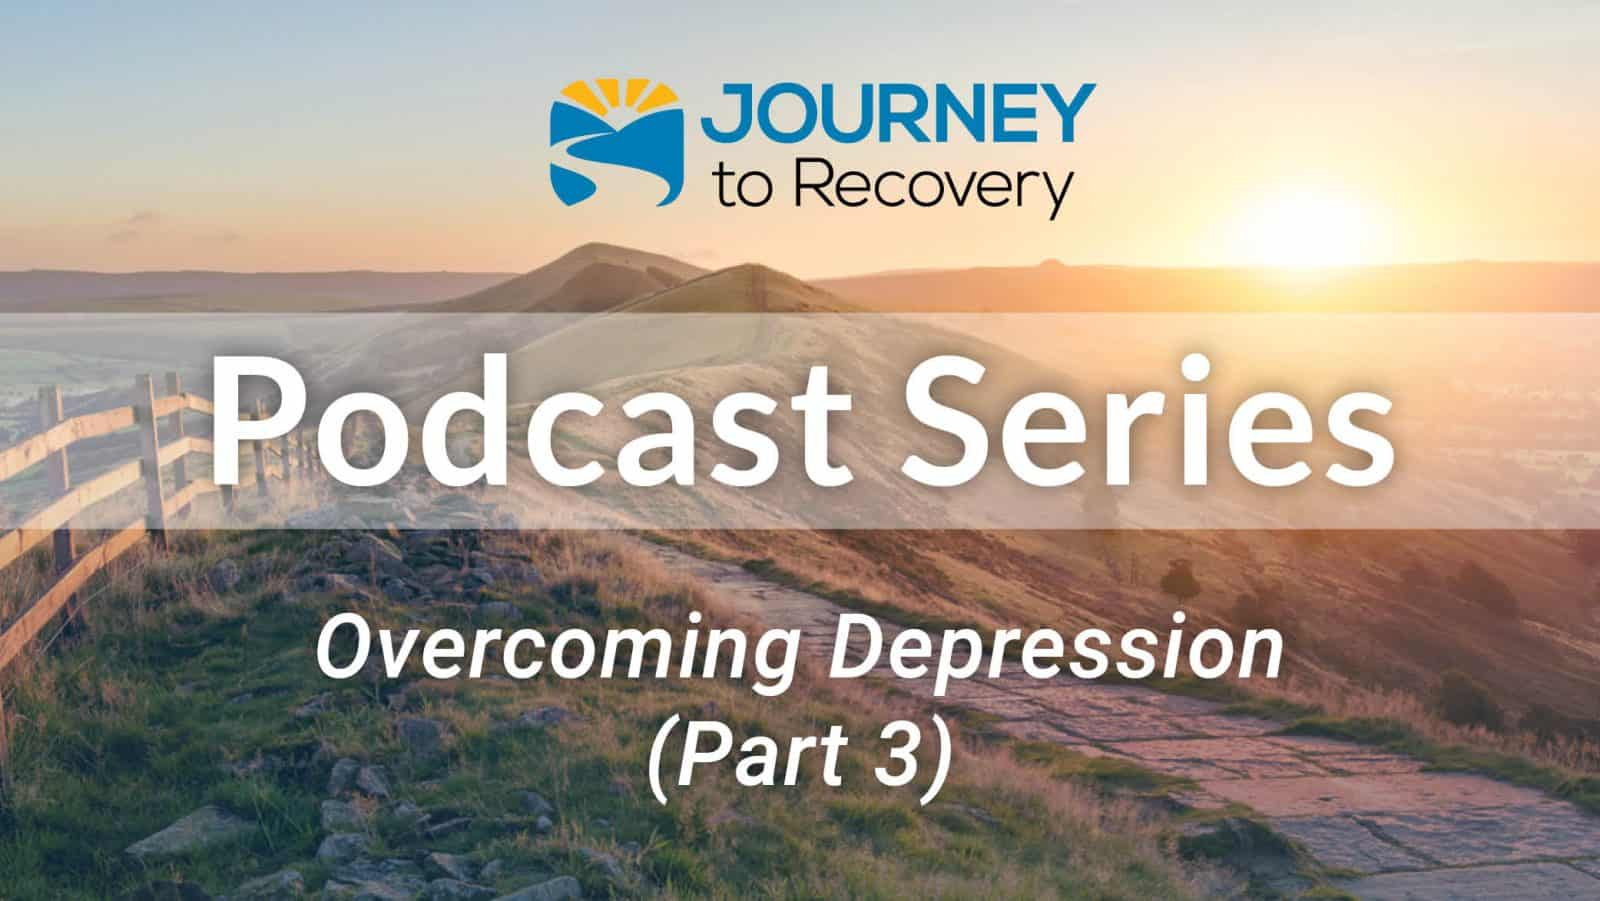 Overcoming Depression (Part 3)